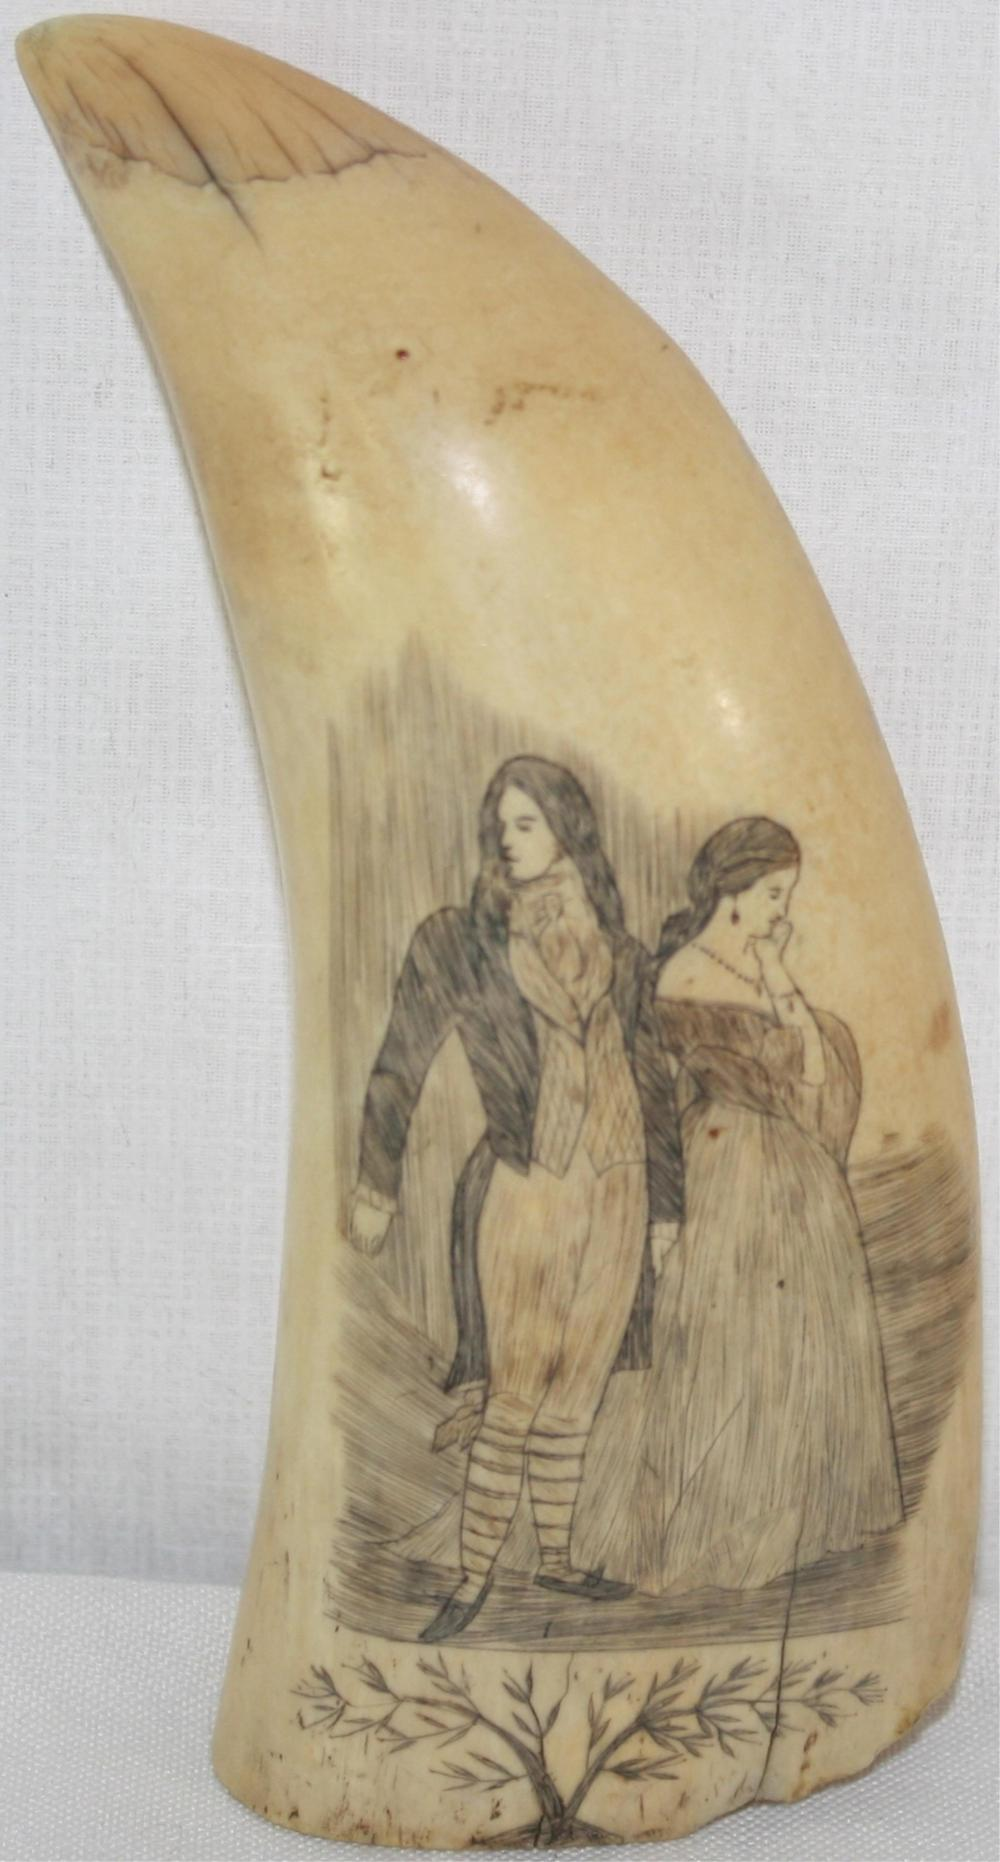 19TH CENTURY SCRIMSHAW WHALE'S TOOTH DEPICTING A